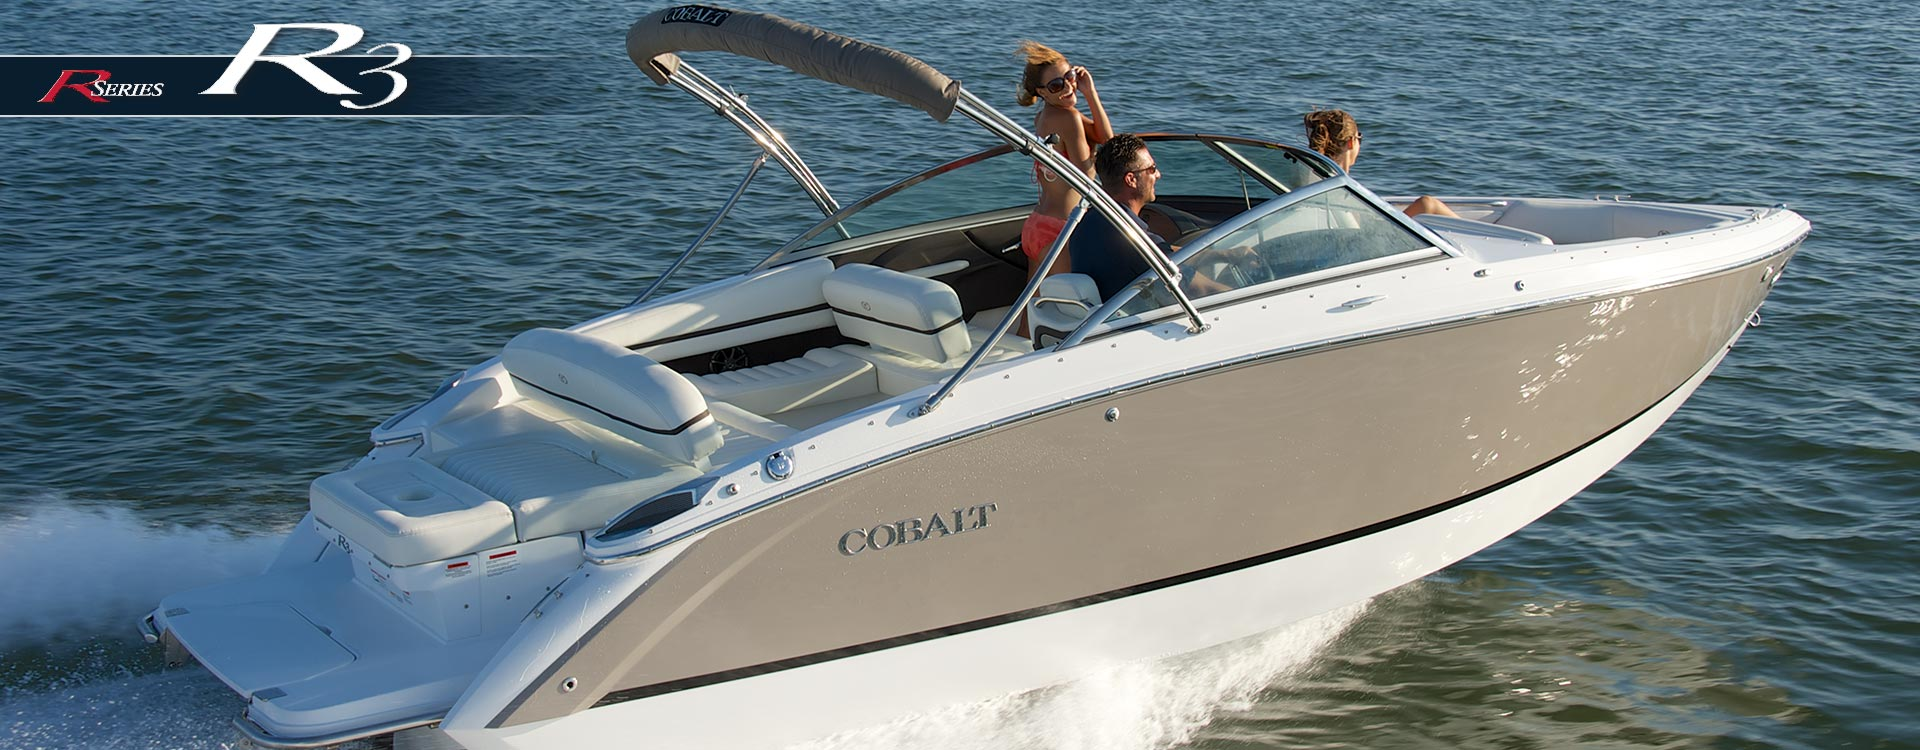 Cobalt r 3 ponent yachts for Best boat for fishing and family